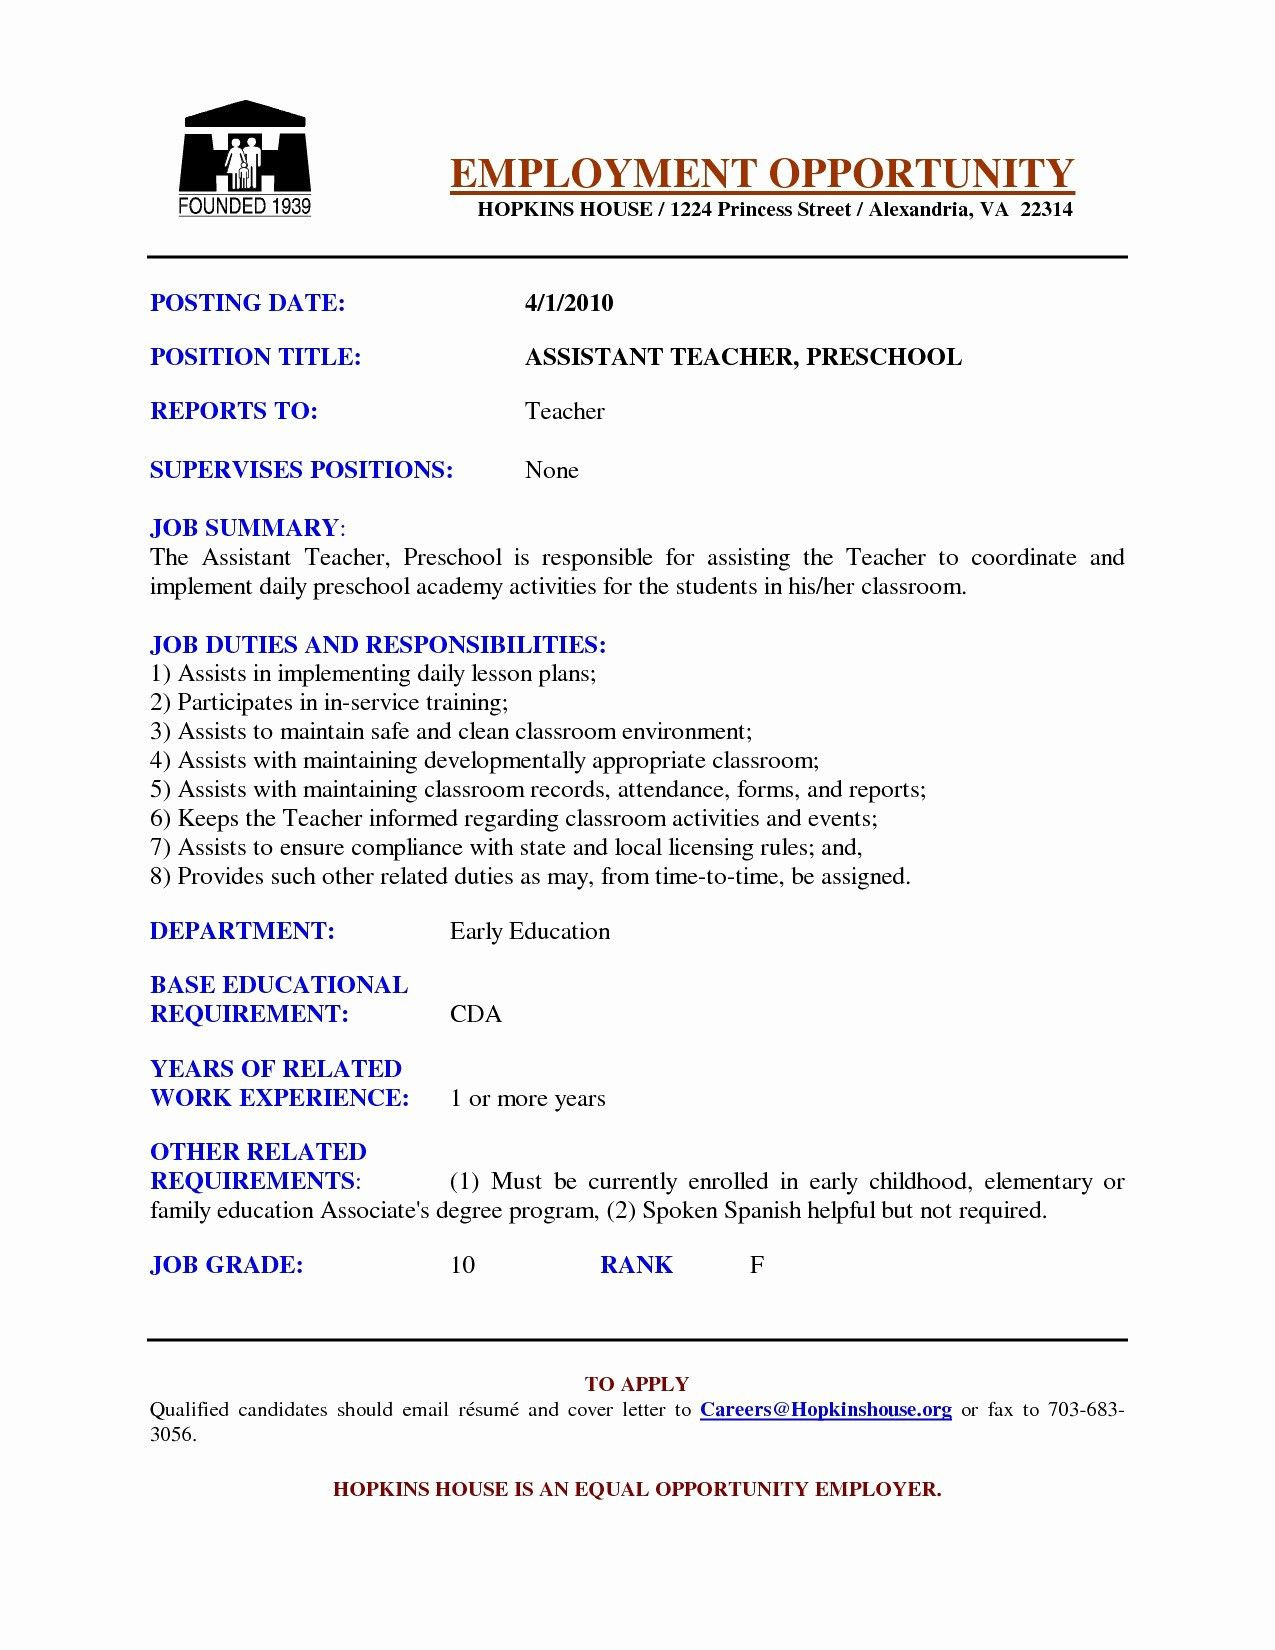 77 Inspiring Image Of Information Technology Assistant Resume Examples Check More At Https Www Ourpetscrawley Com 77 Inspiring Image Of Information Technology